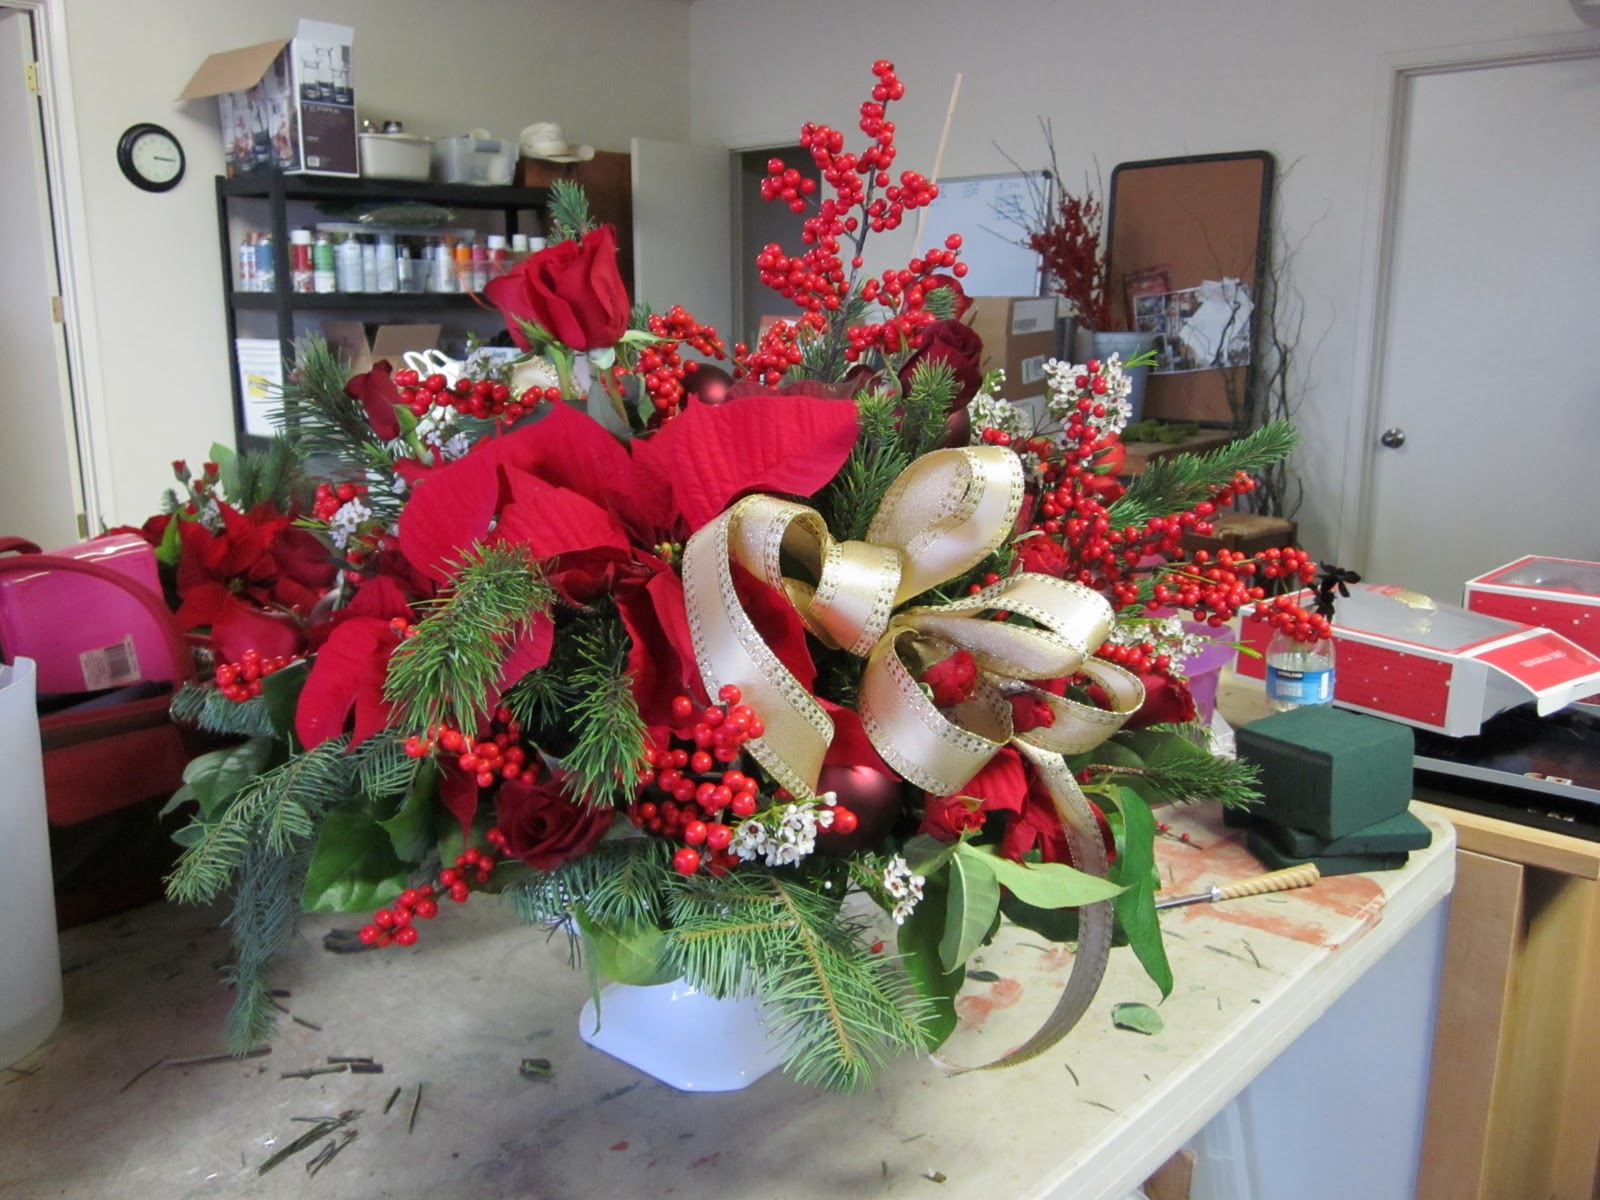 Christmas Greenery Centerpieces.Brown Bunny Flowers Christmas Centerpiece At Home